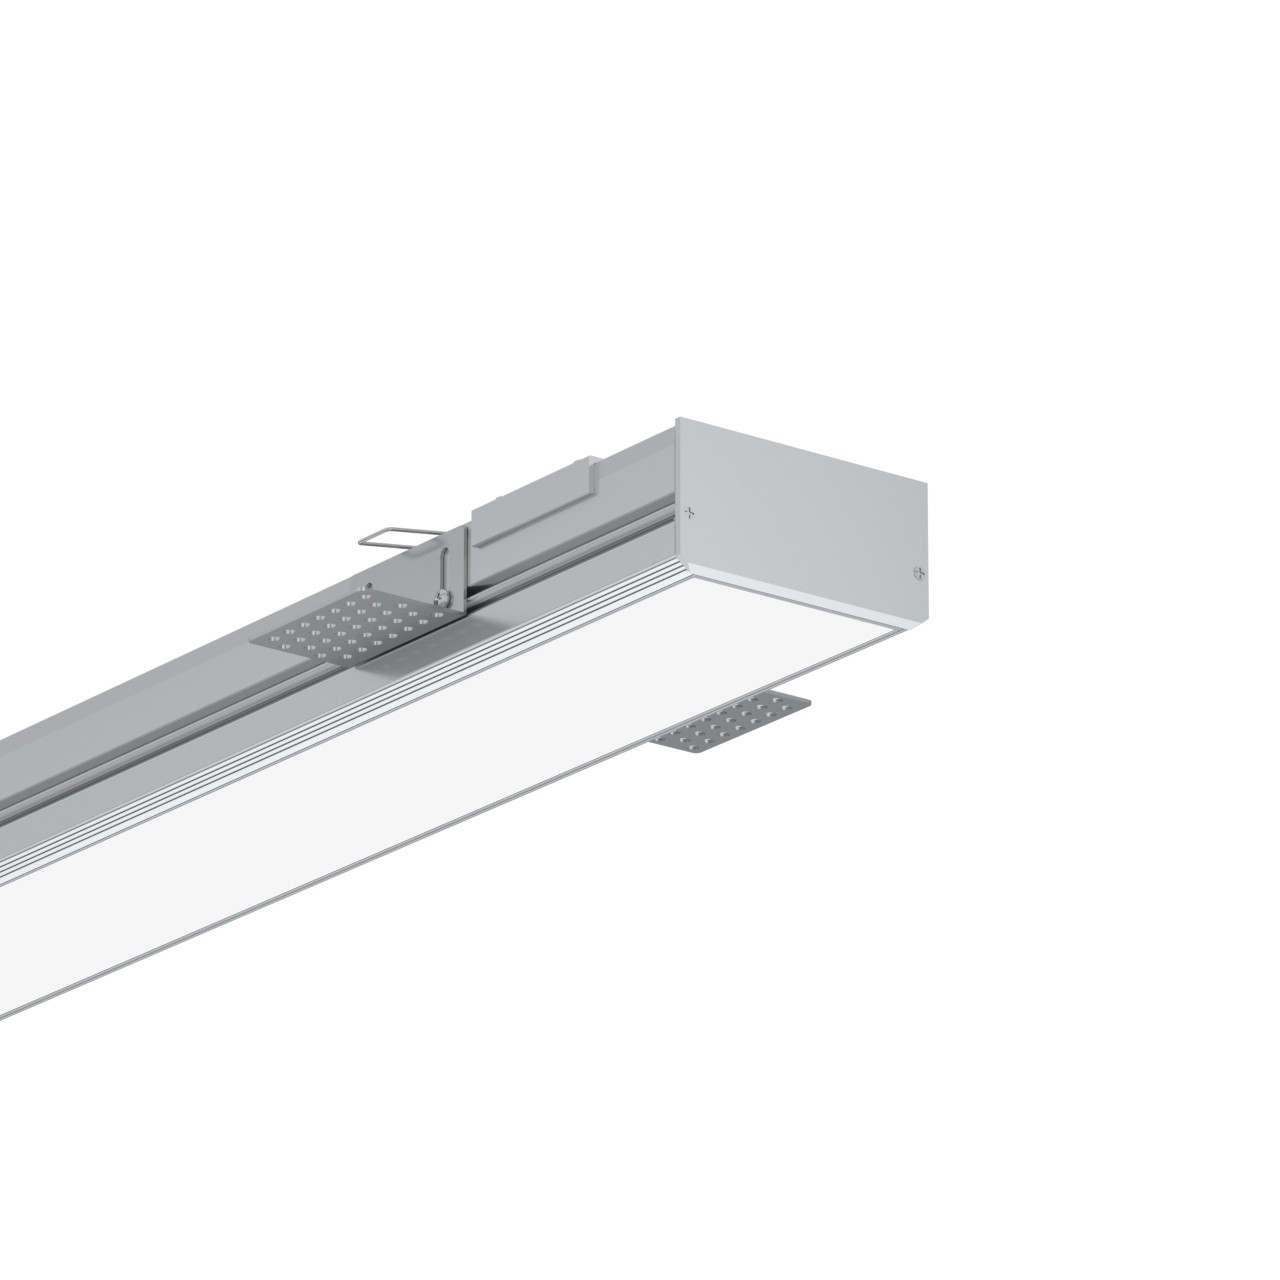 TR80 80mm Trimless førte profil for gips loft 94.7x48mm